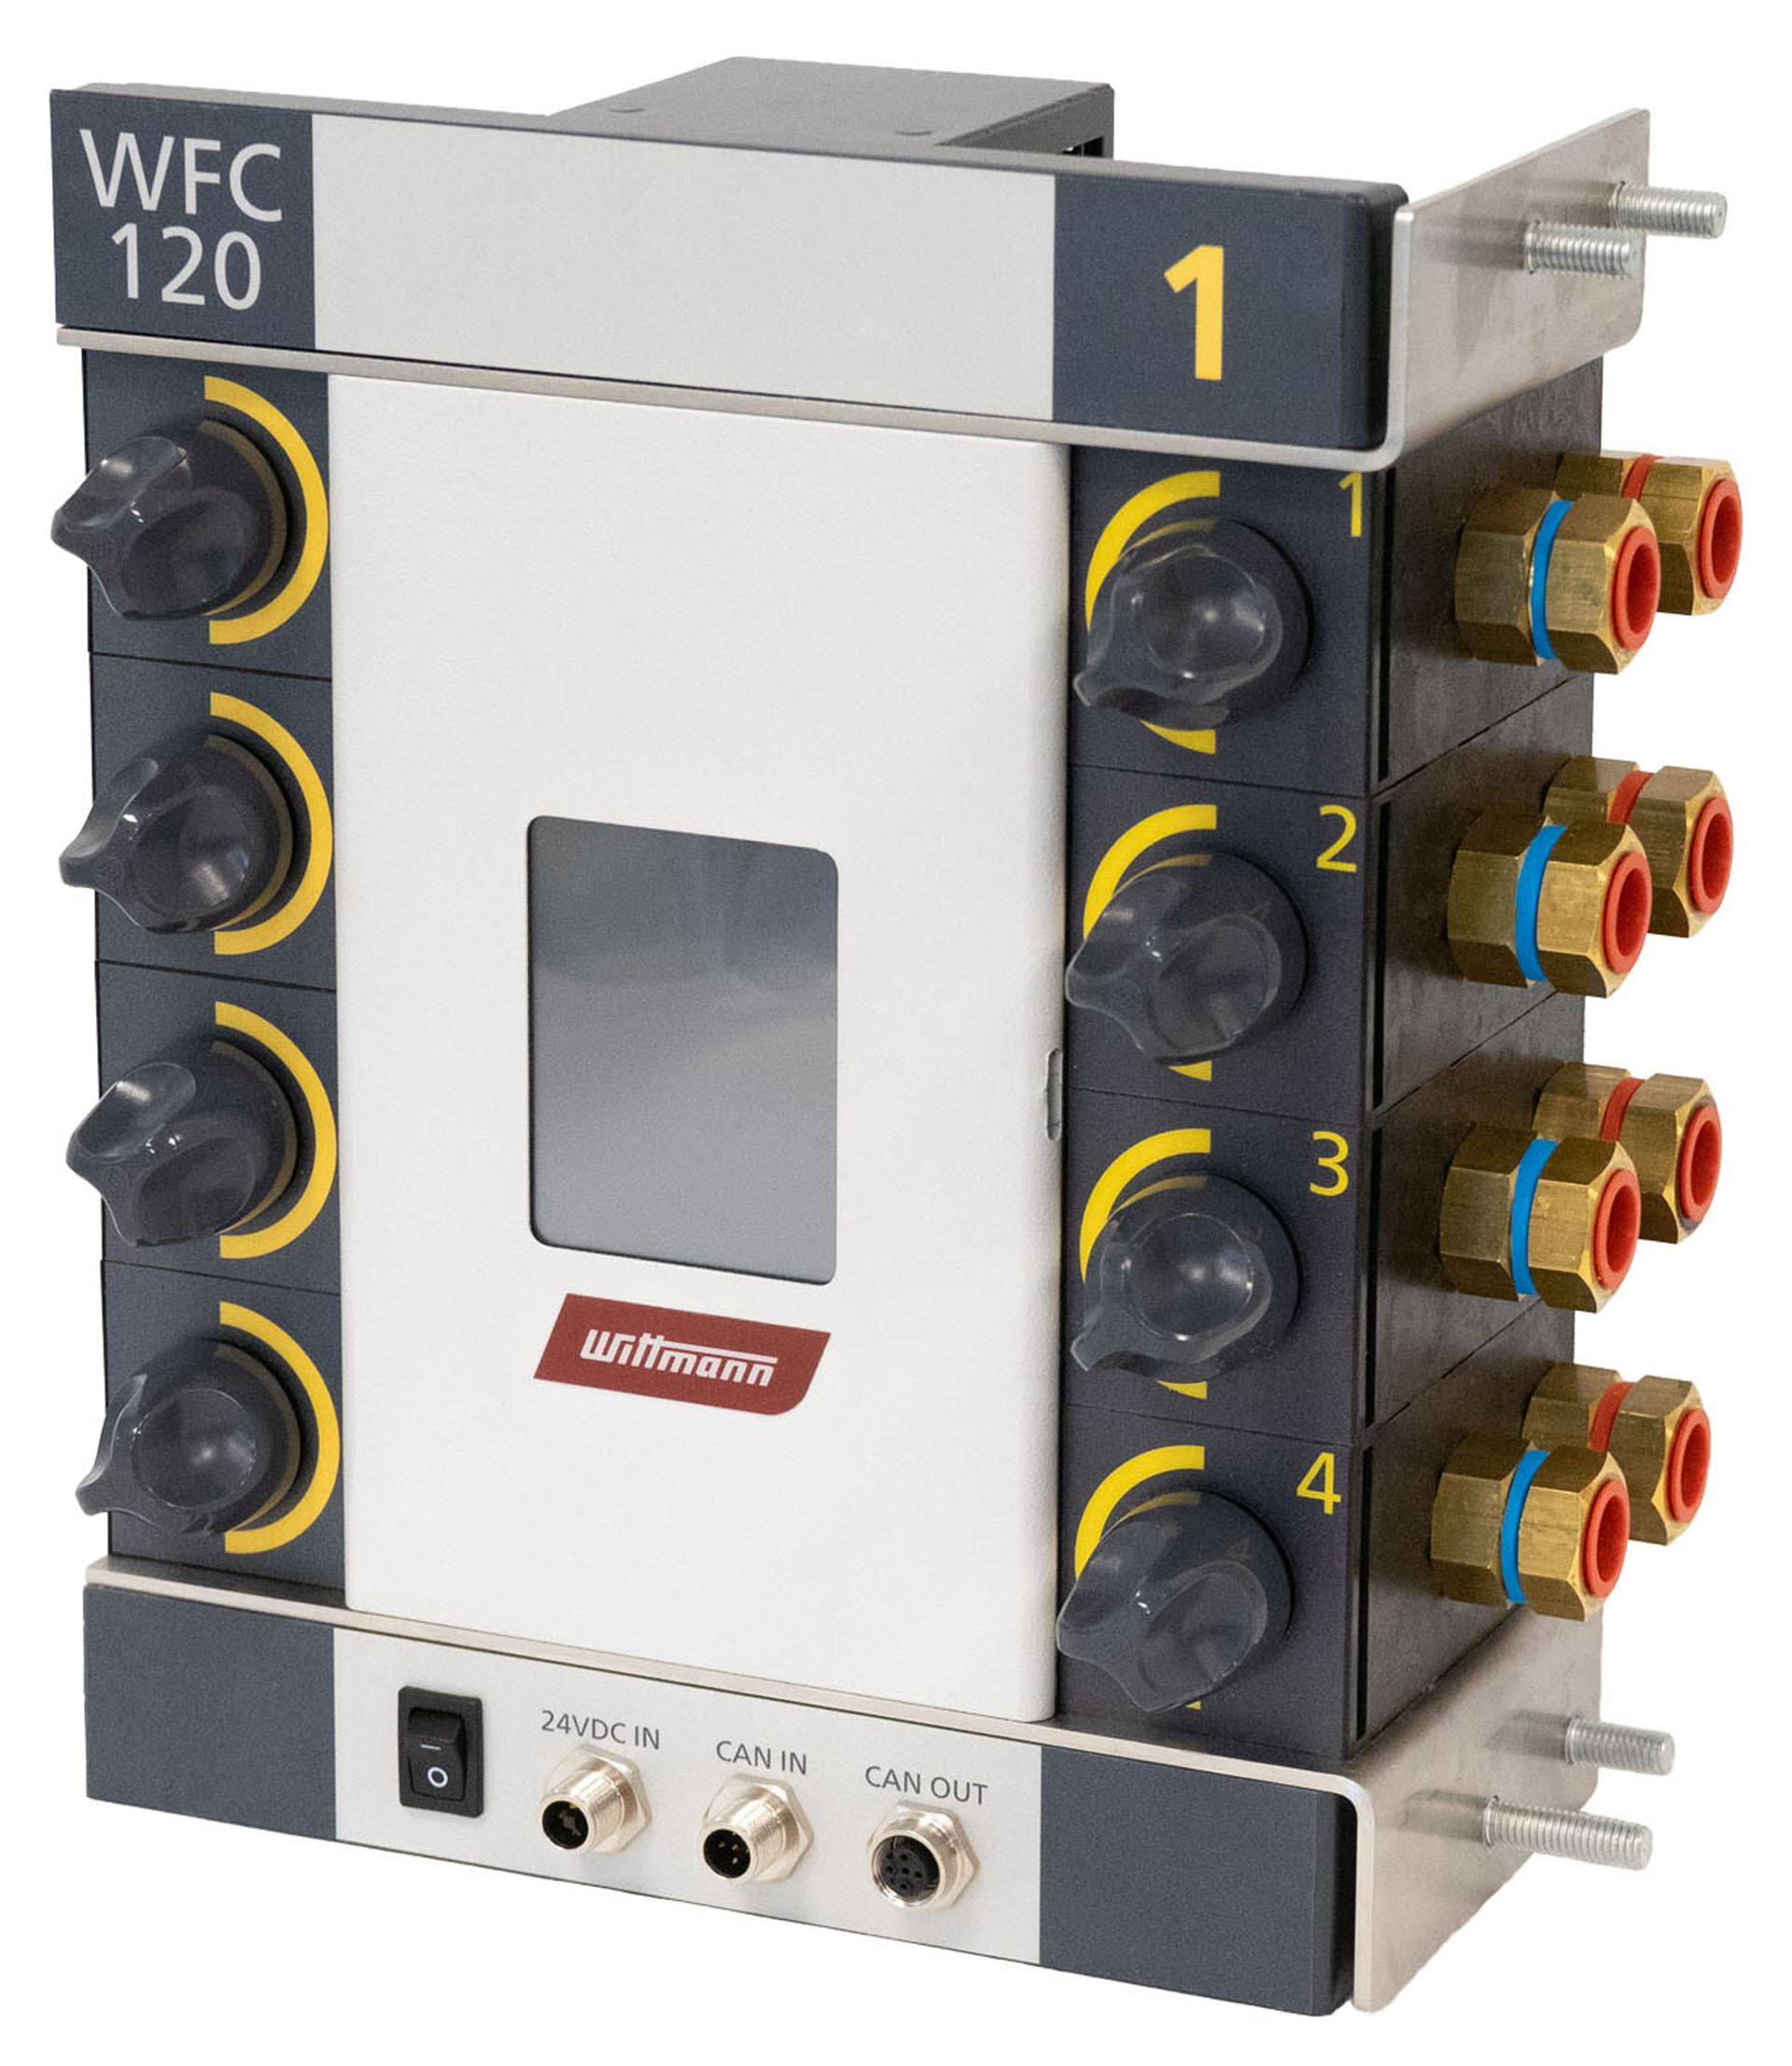 WFC 120, the digital water distributor of the next generation